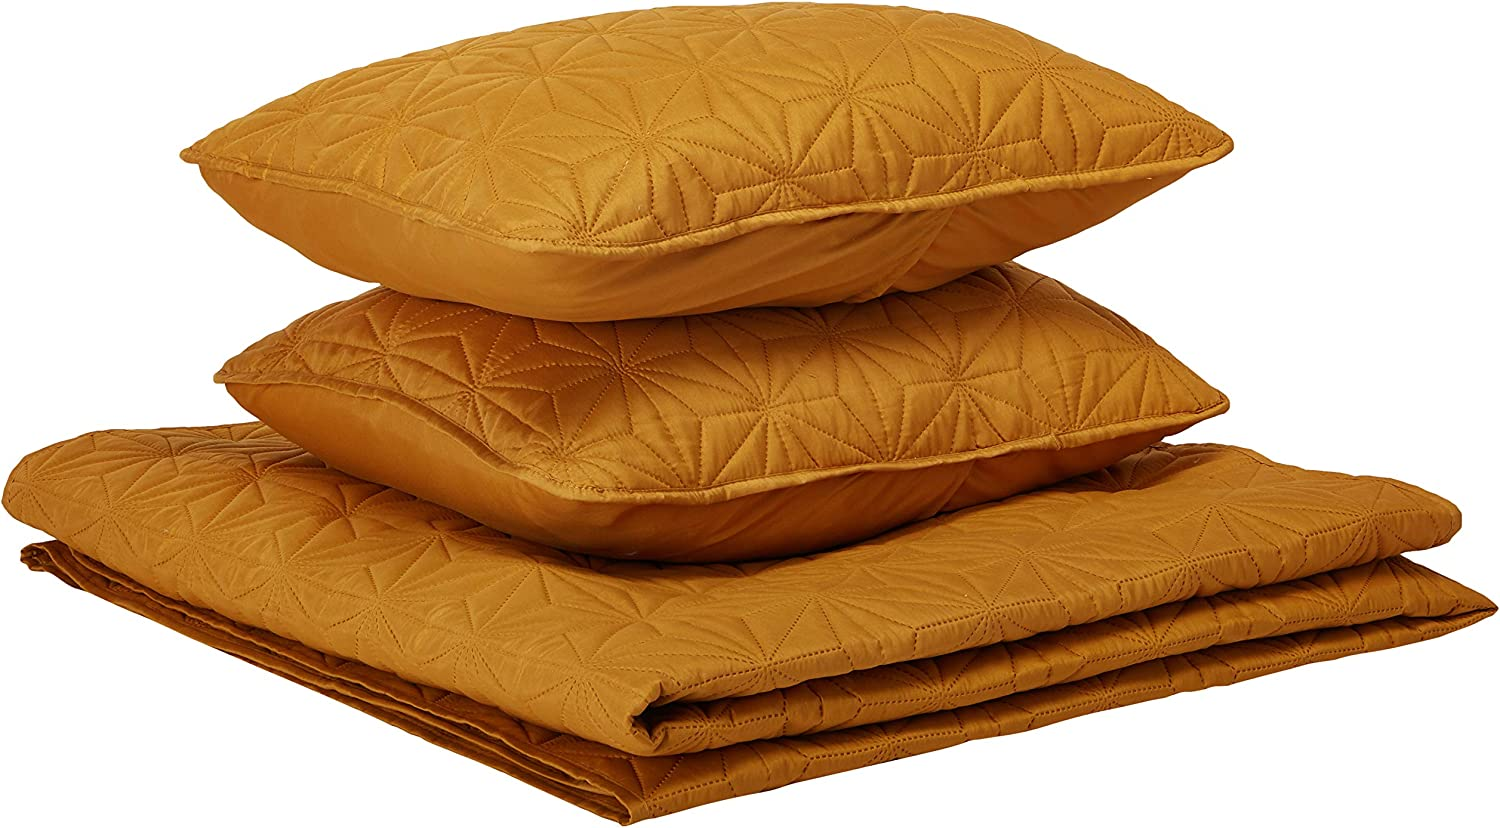 VCNY Home KLI-3QT-FUQU-IN-GL 3-Piece, Full/Queen, Gold